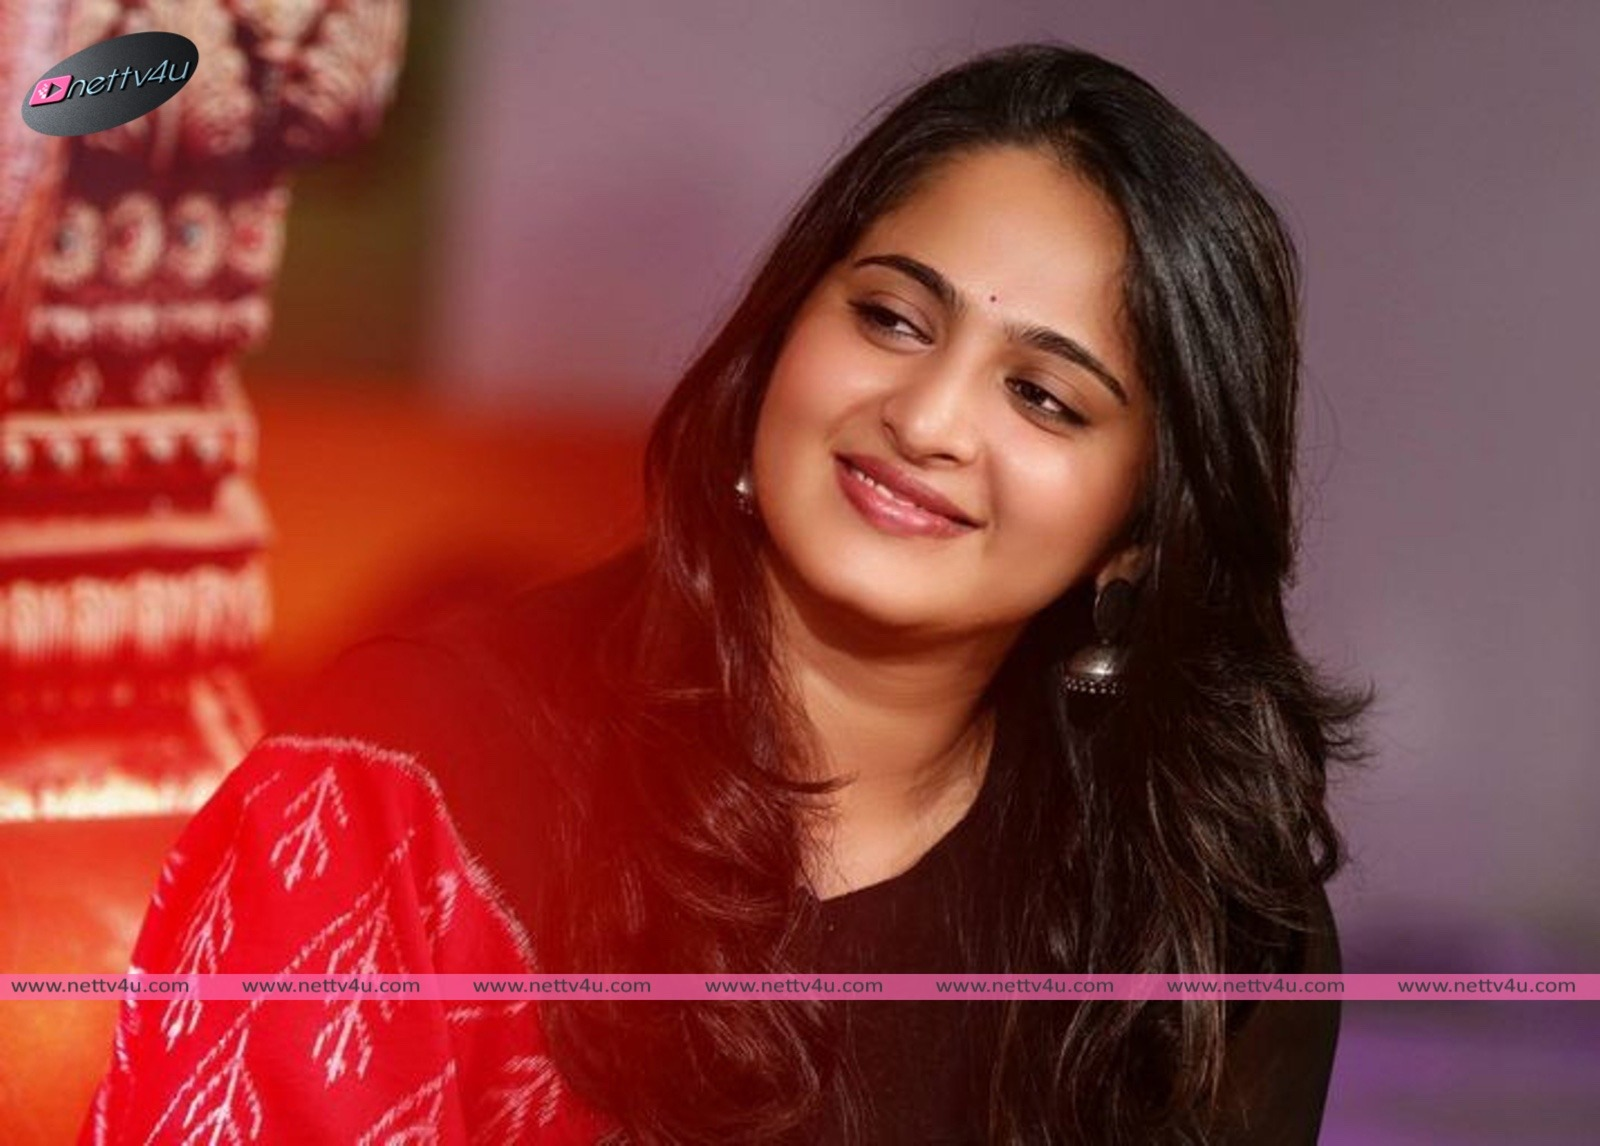 Anushka shetty cute pictures Tamanna - Tamil actress photos-pictures images of